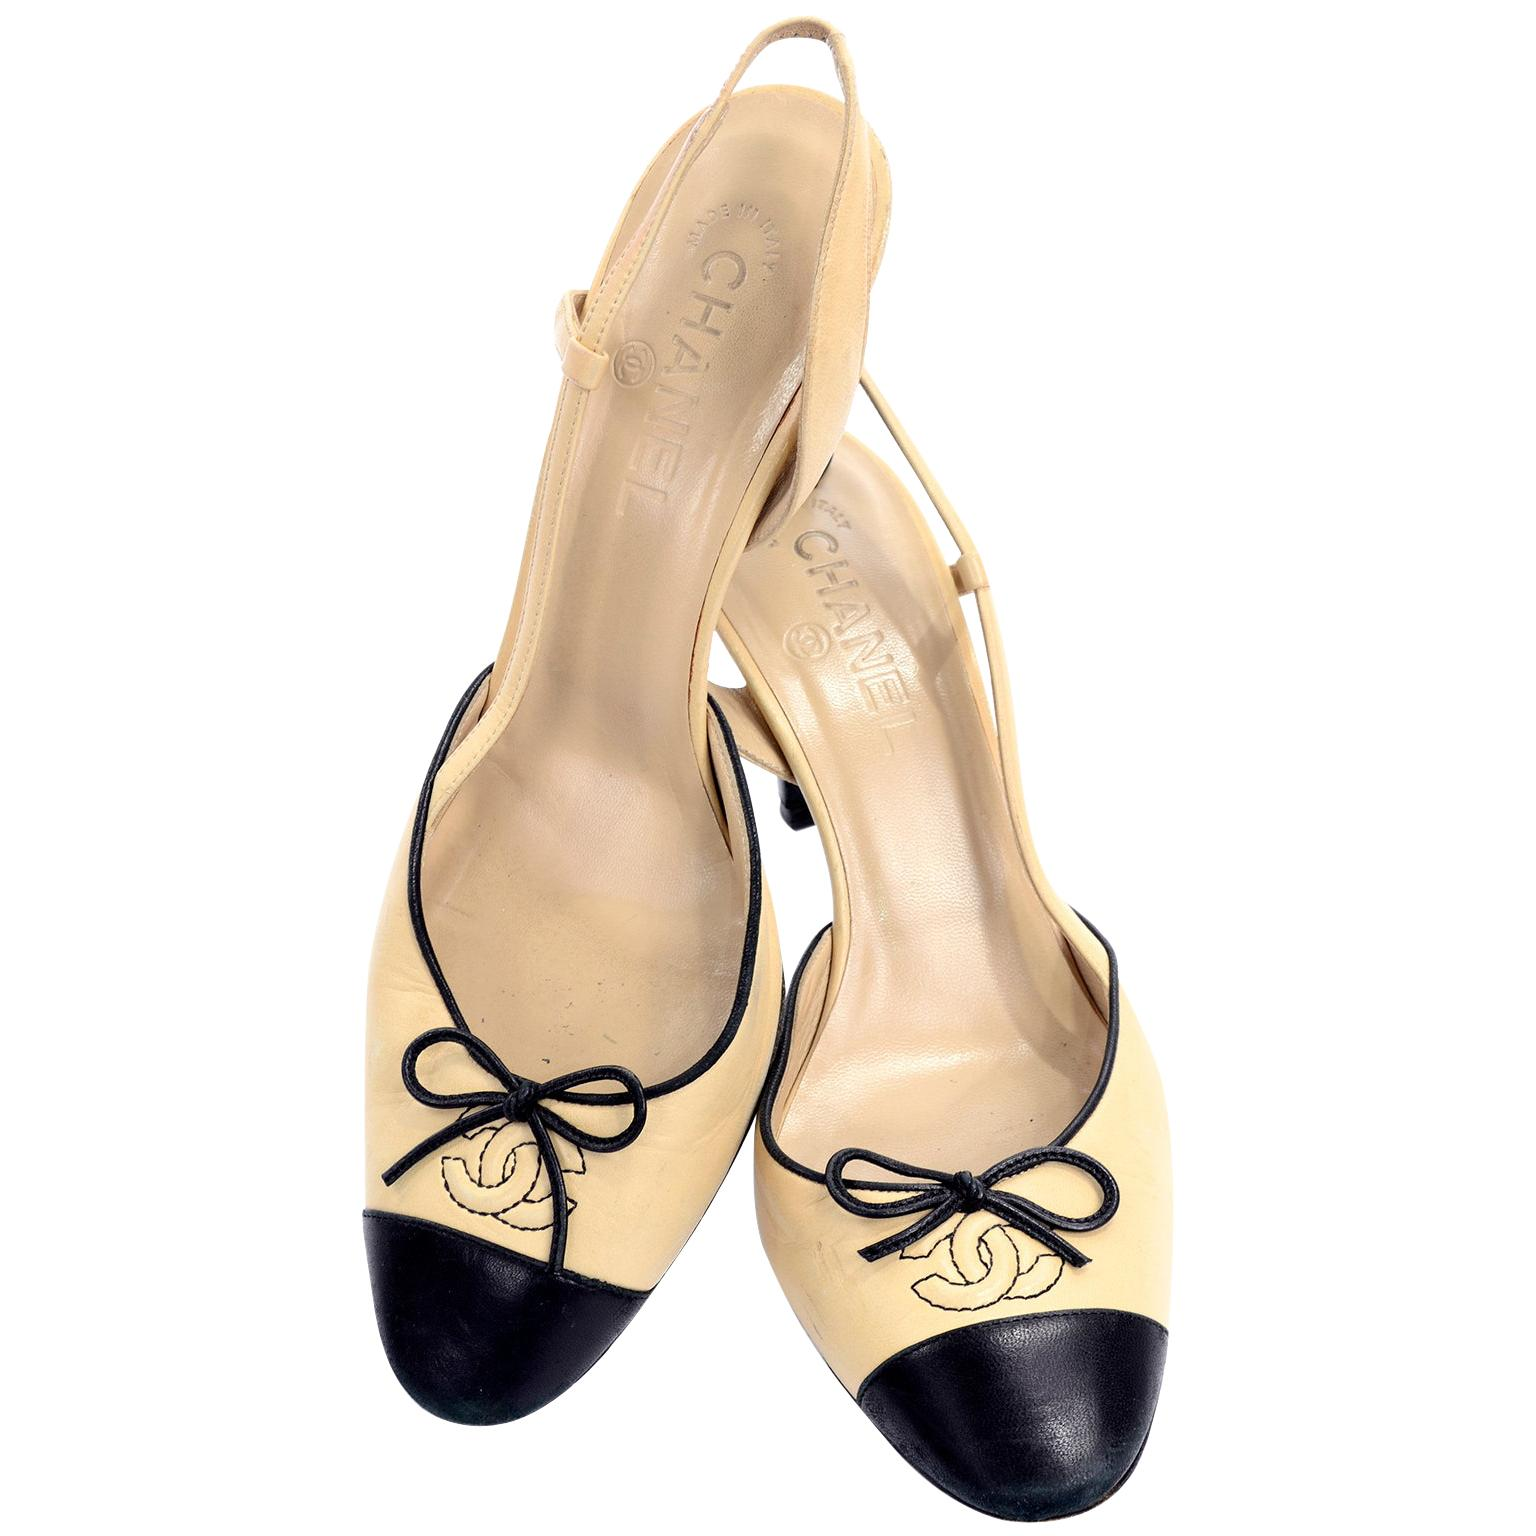 867e08b36c Vintage Chanel Shoes - 352 For Sale at 1stdibs